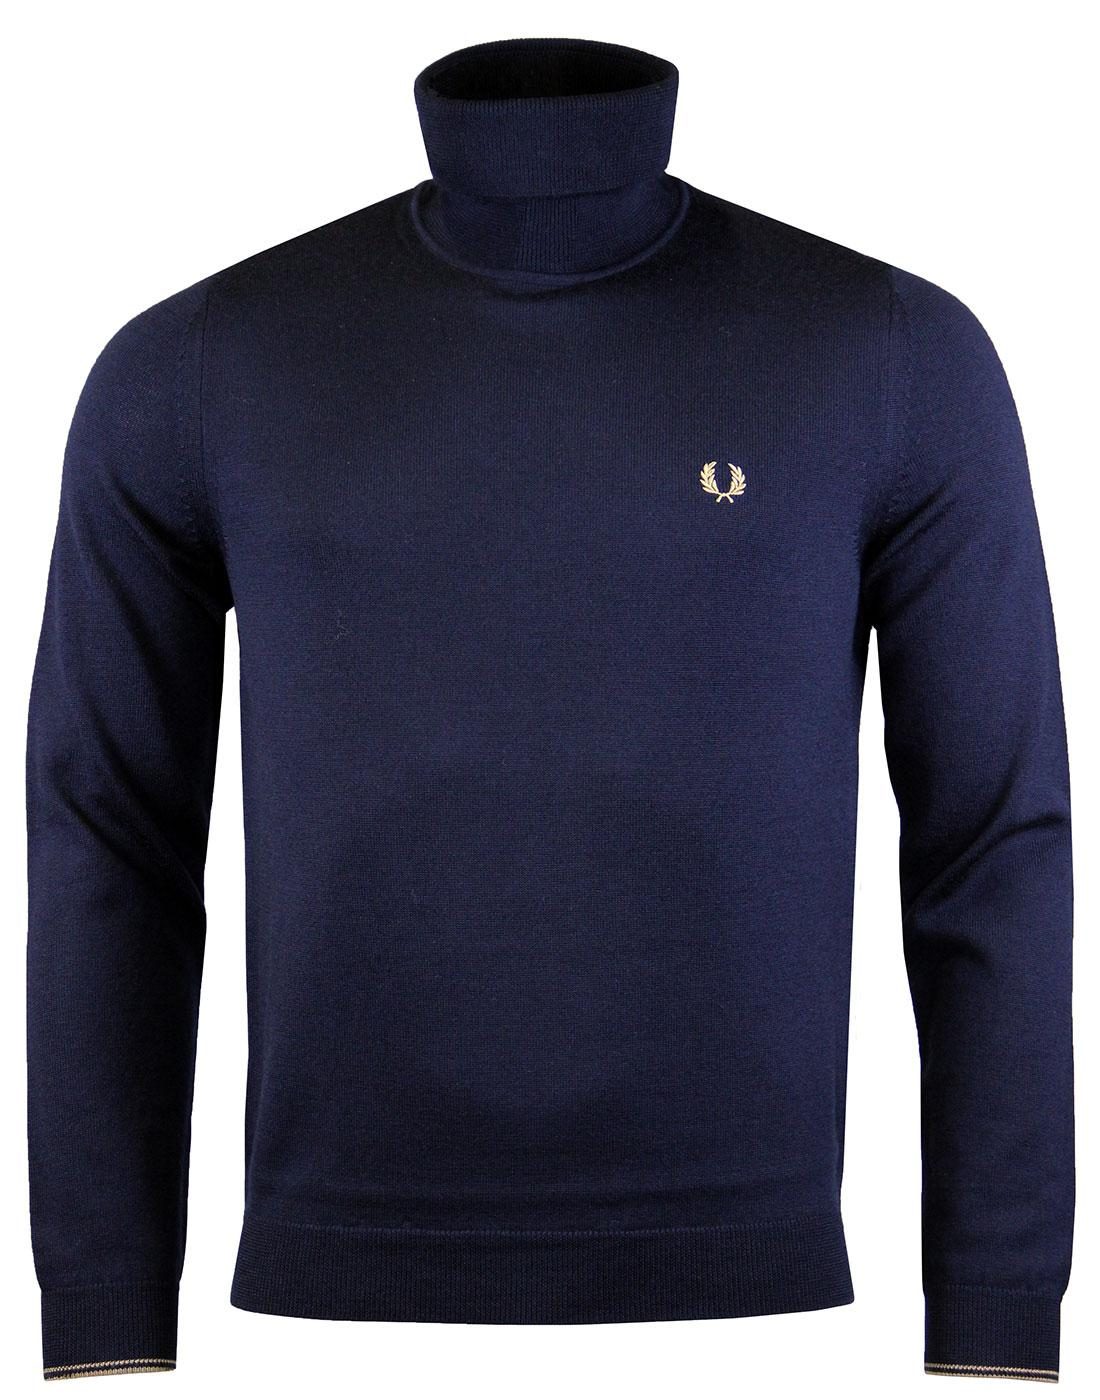 FRED PERRY Knitted Merino Wool Roll Neck Jumper DC